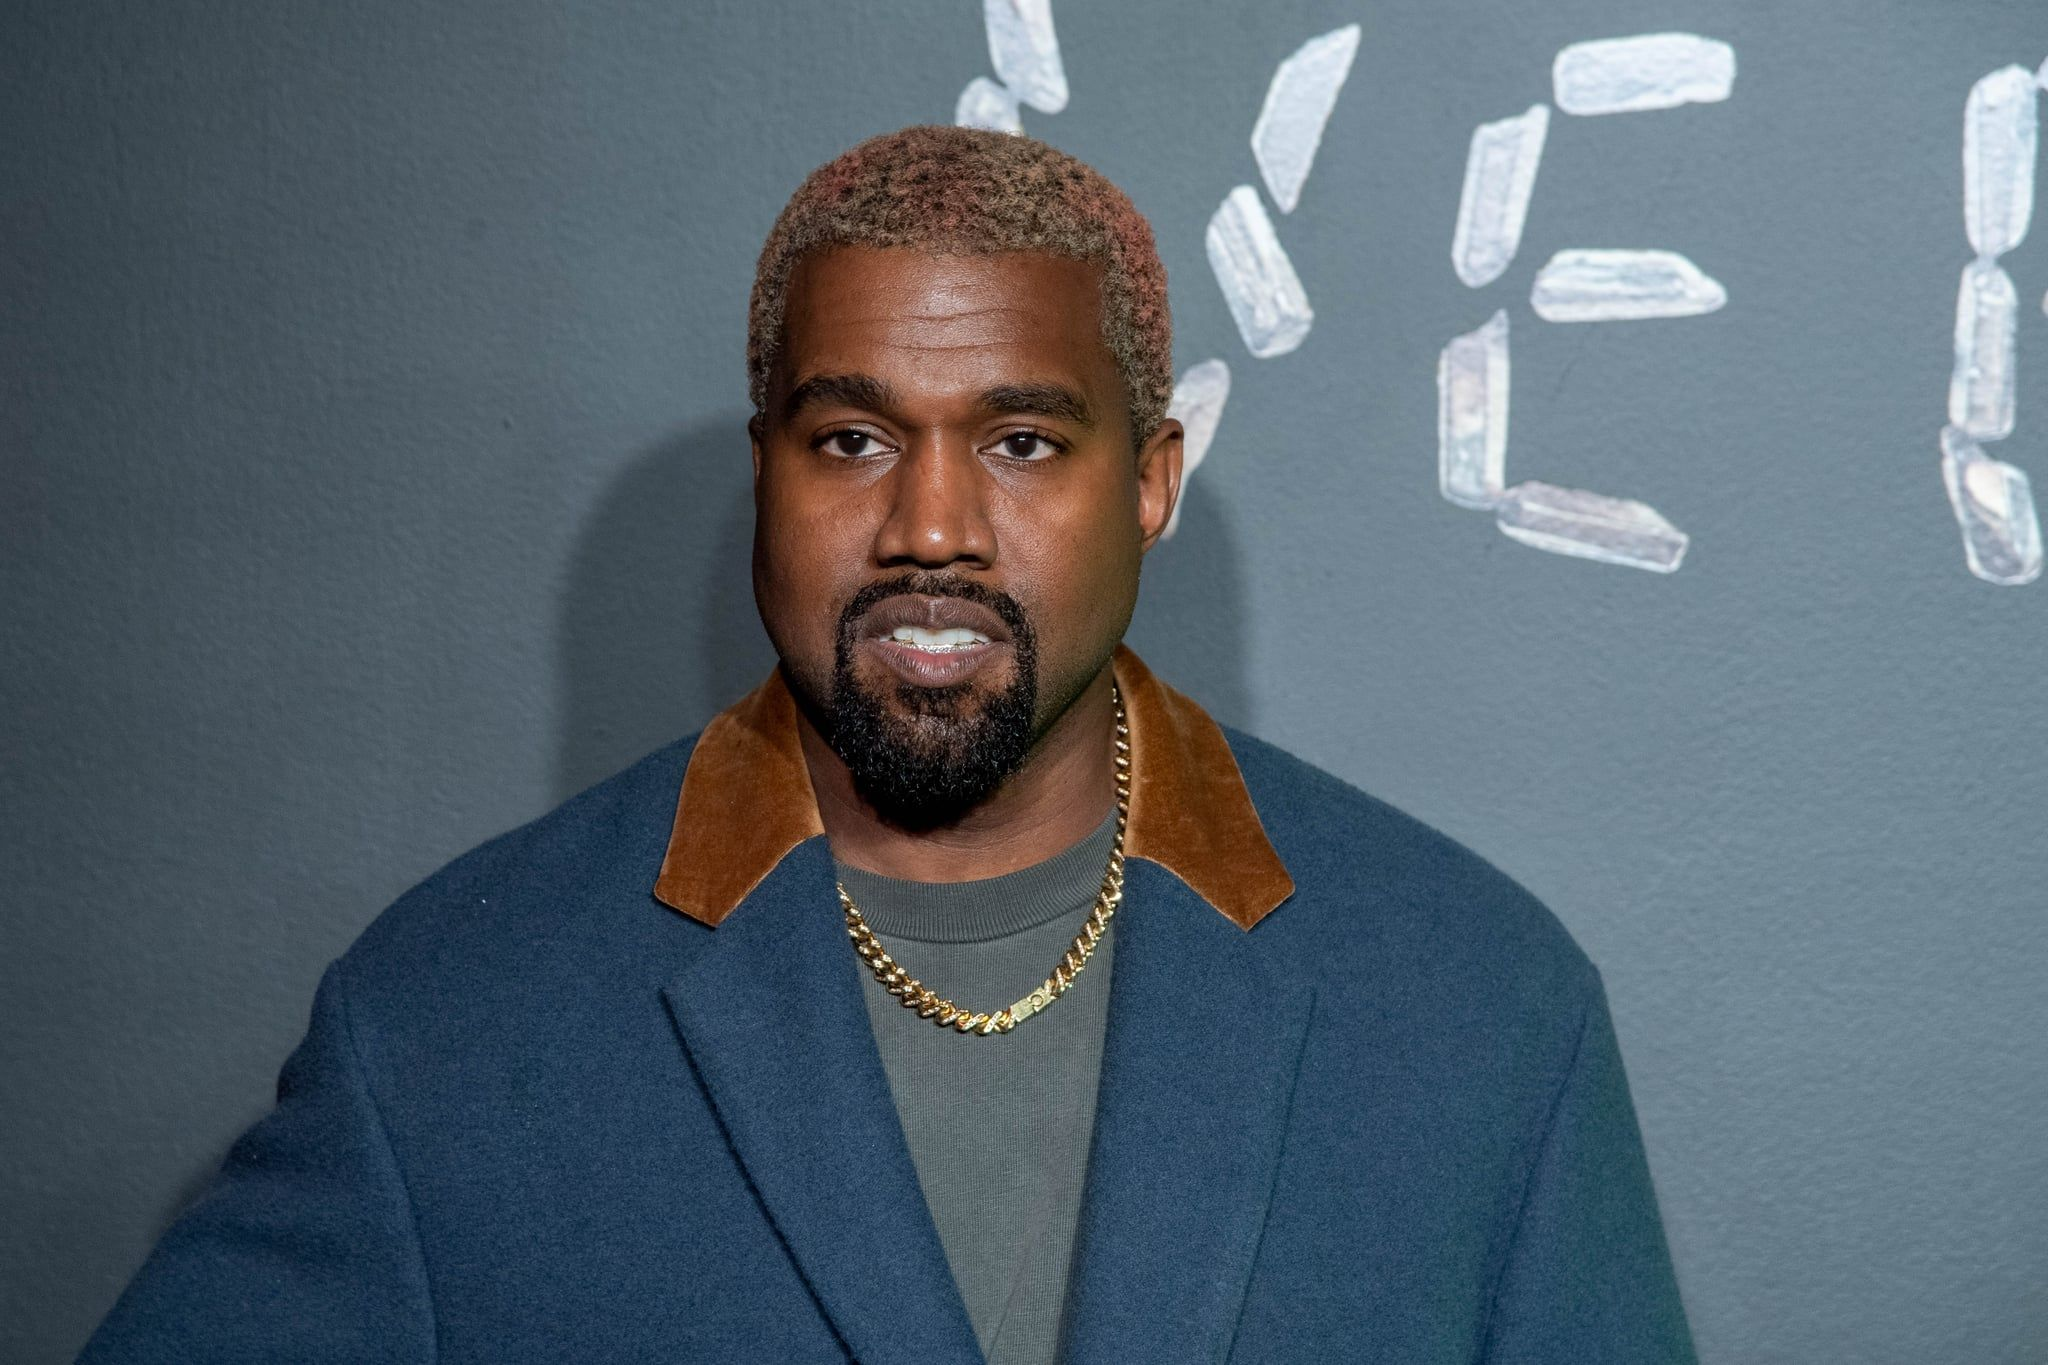 Kanye West Hits The First Roadblock In His Presidential Run In 2020 Kanye West Kanye Celebrity News